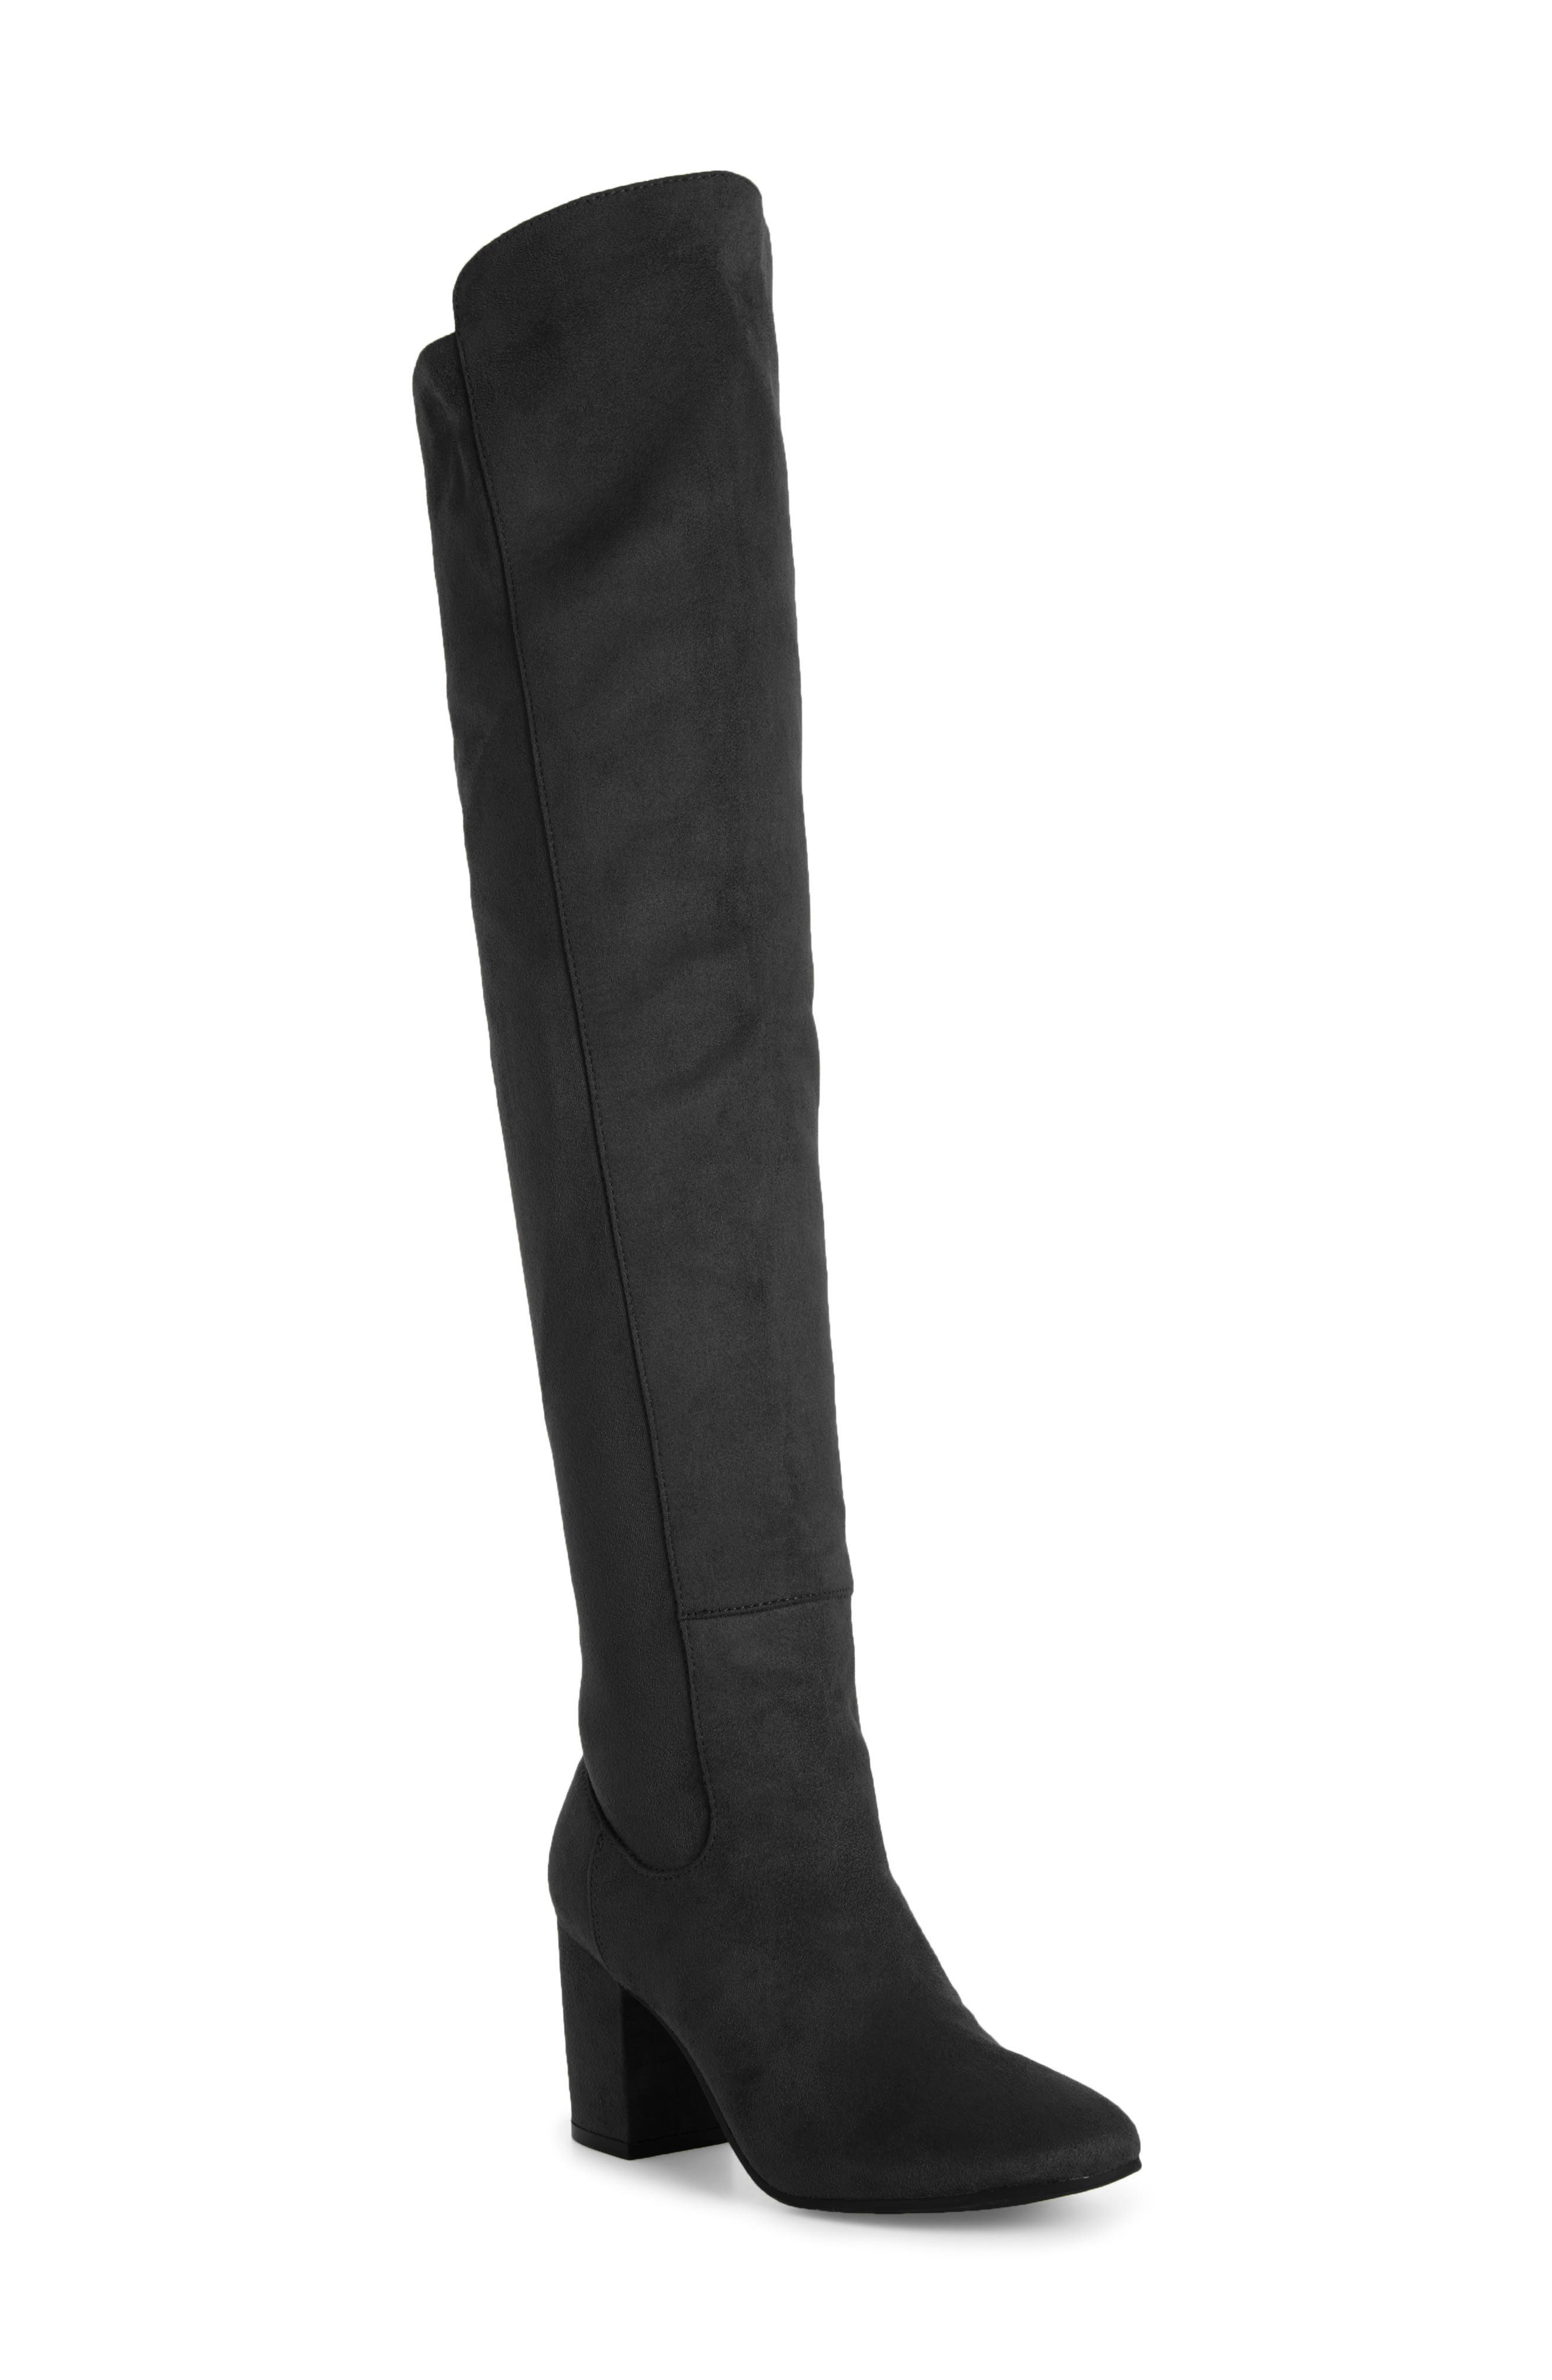 Lynx Stretch Over the Knee Boot,                             Main thumbnail 1, color,                             005